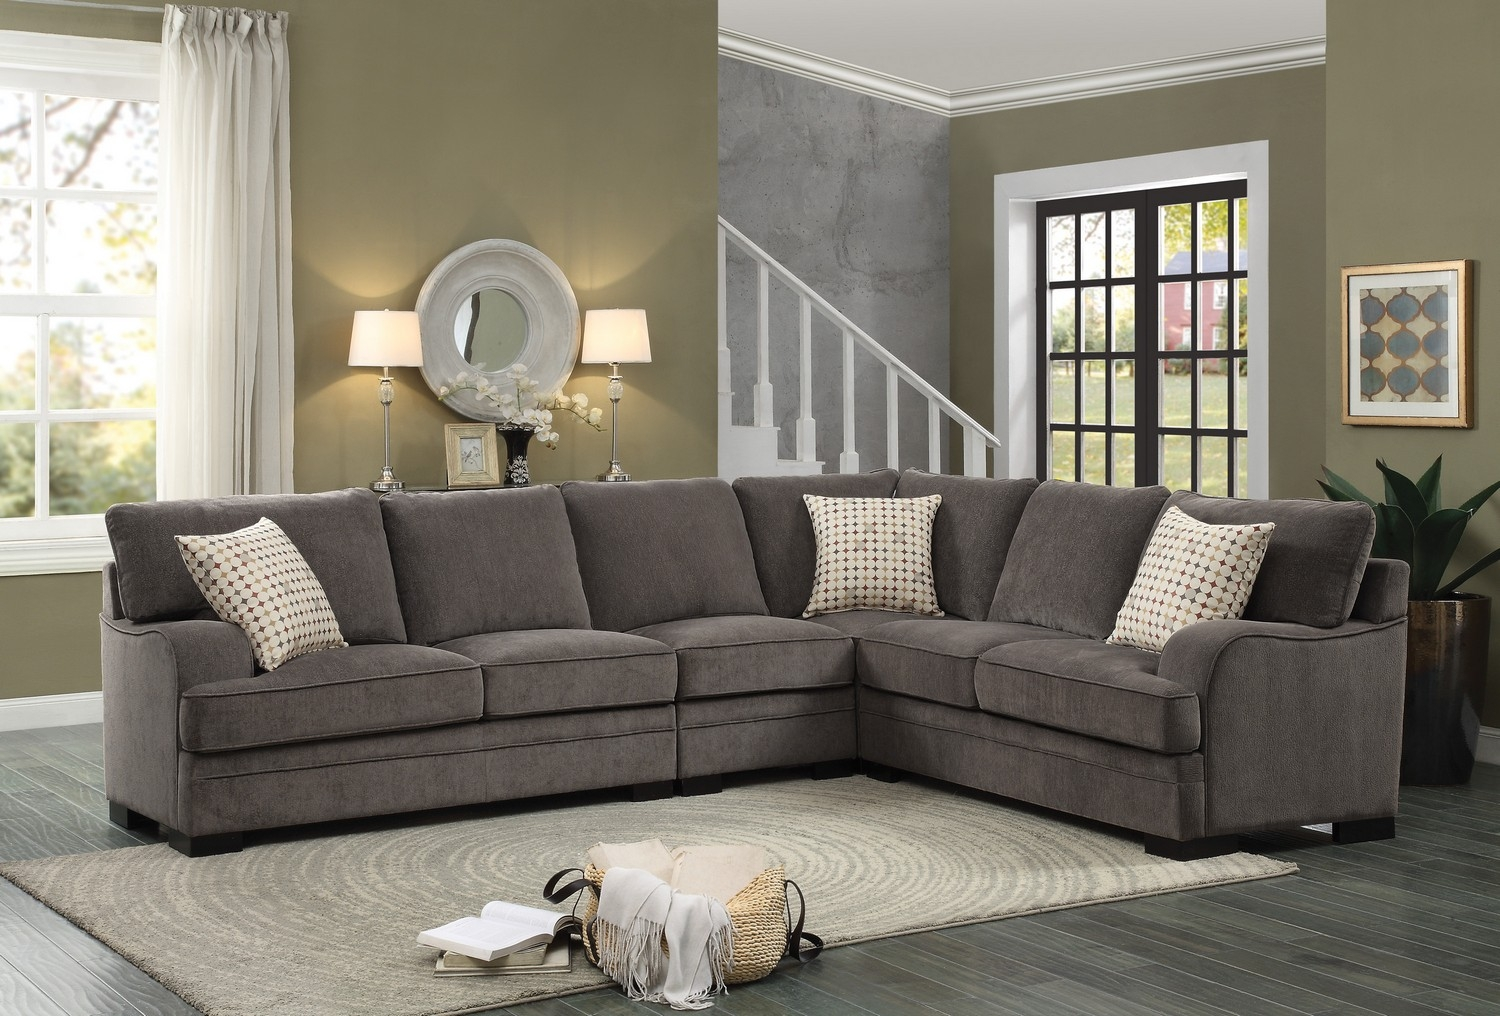 Homelegance Alamosa Sectional Sofa Set Chenille Brown 8335 Within Chenille Sectional Sofas (#10 of 12)